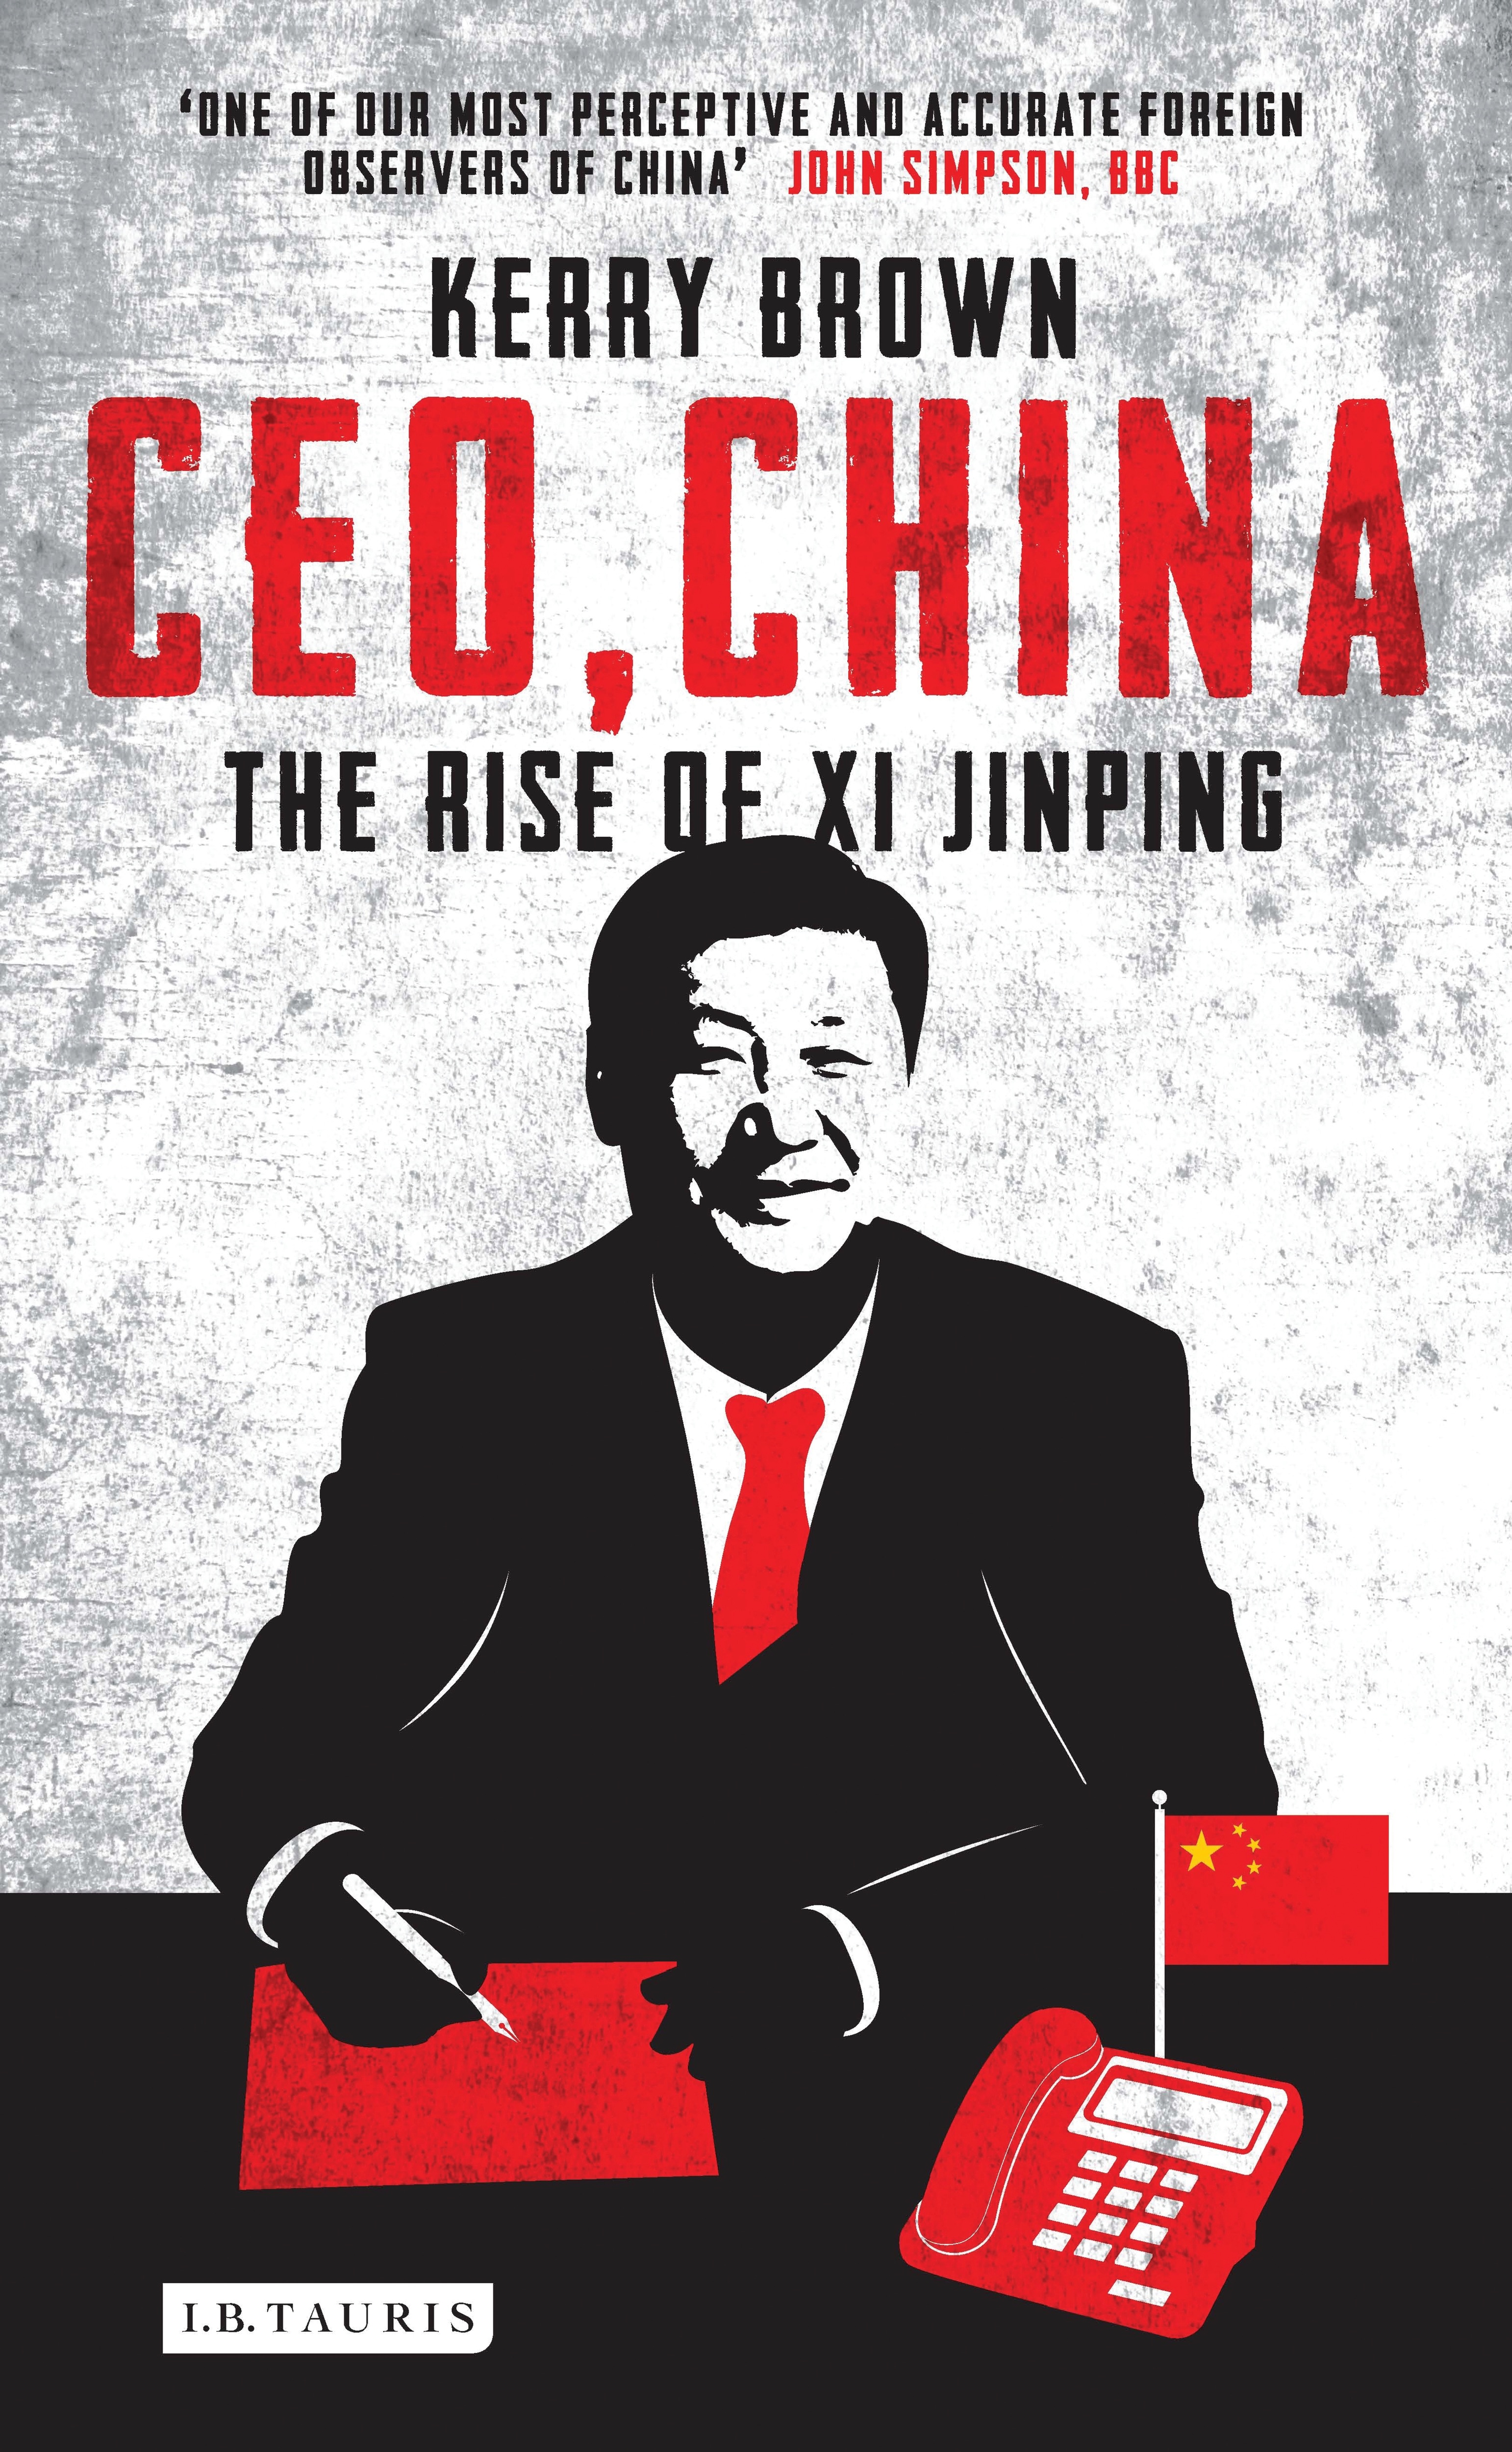 Book Cover of CEO, China